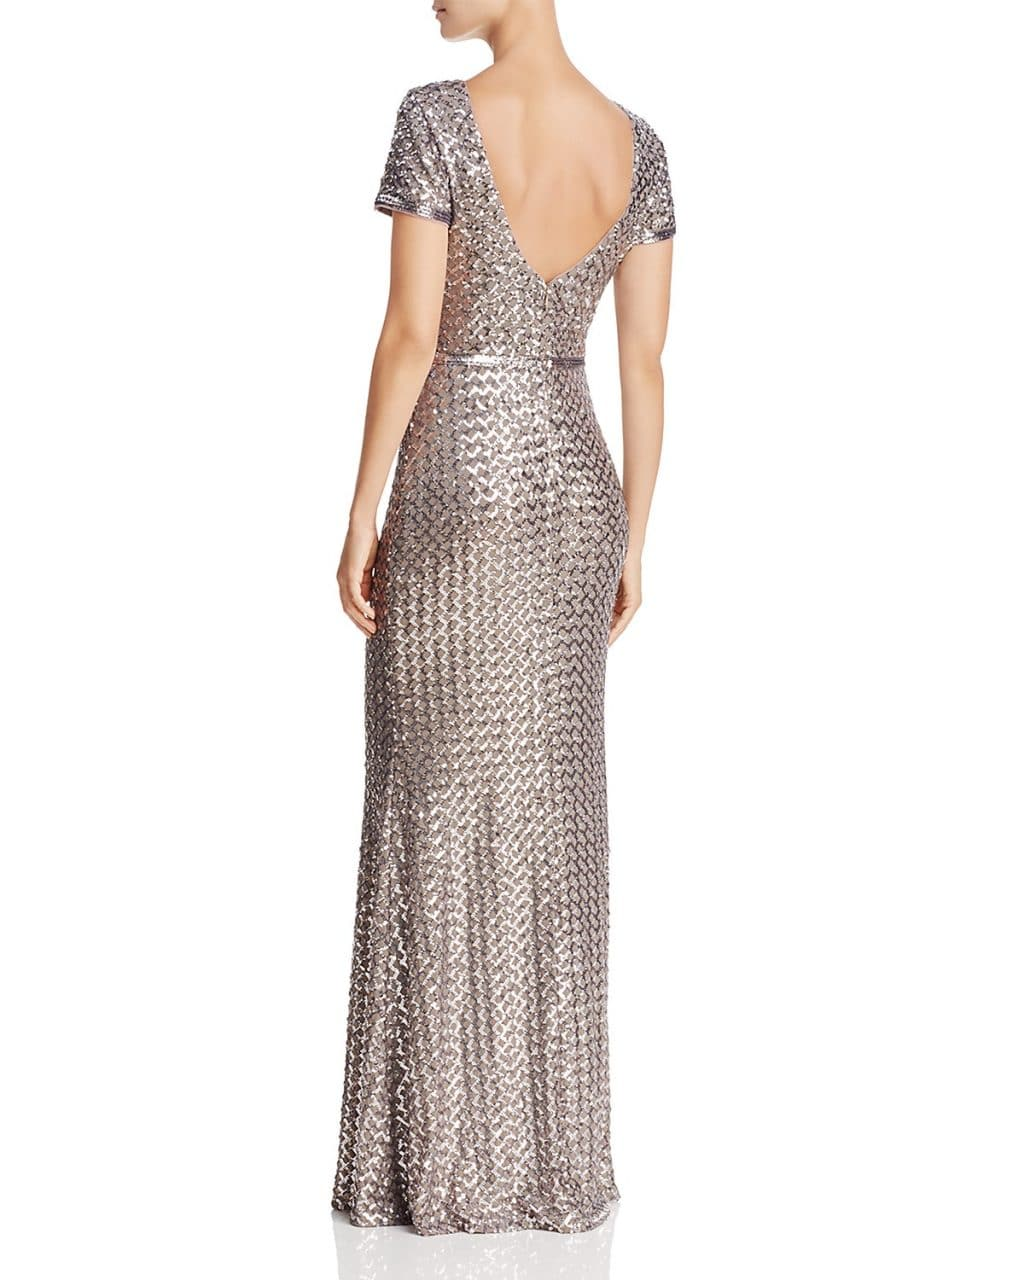 AQUA Belted Sequin Silver / Taupe Gown - We Select Dresses